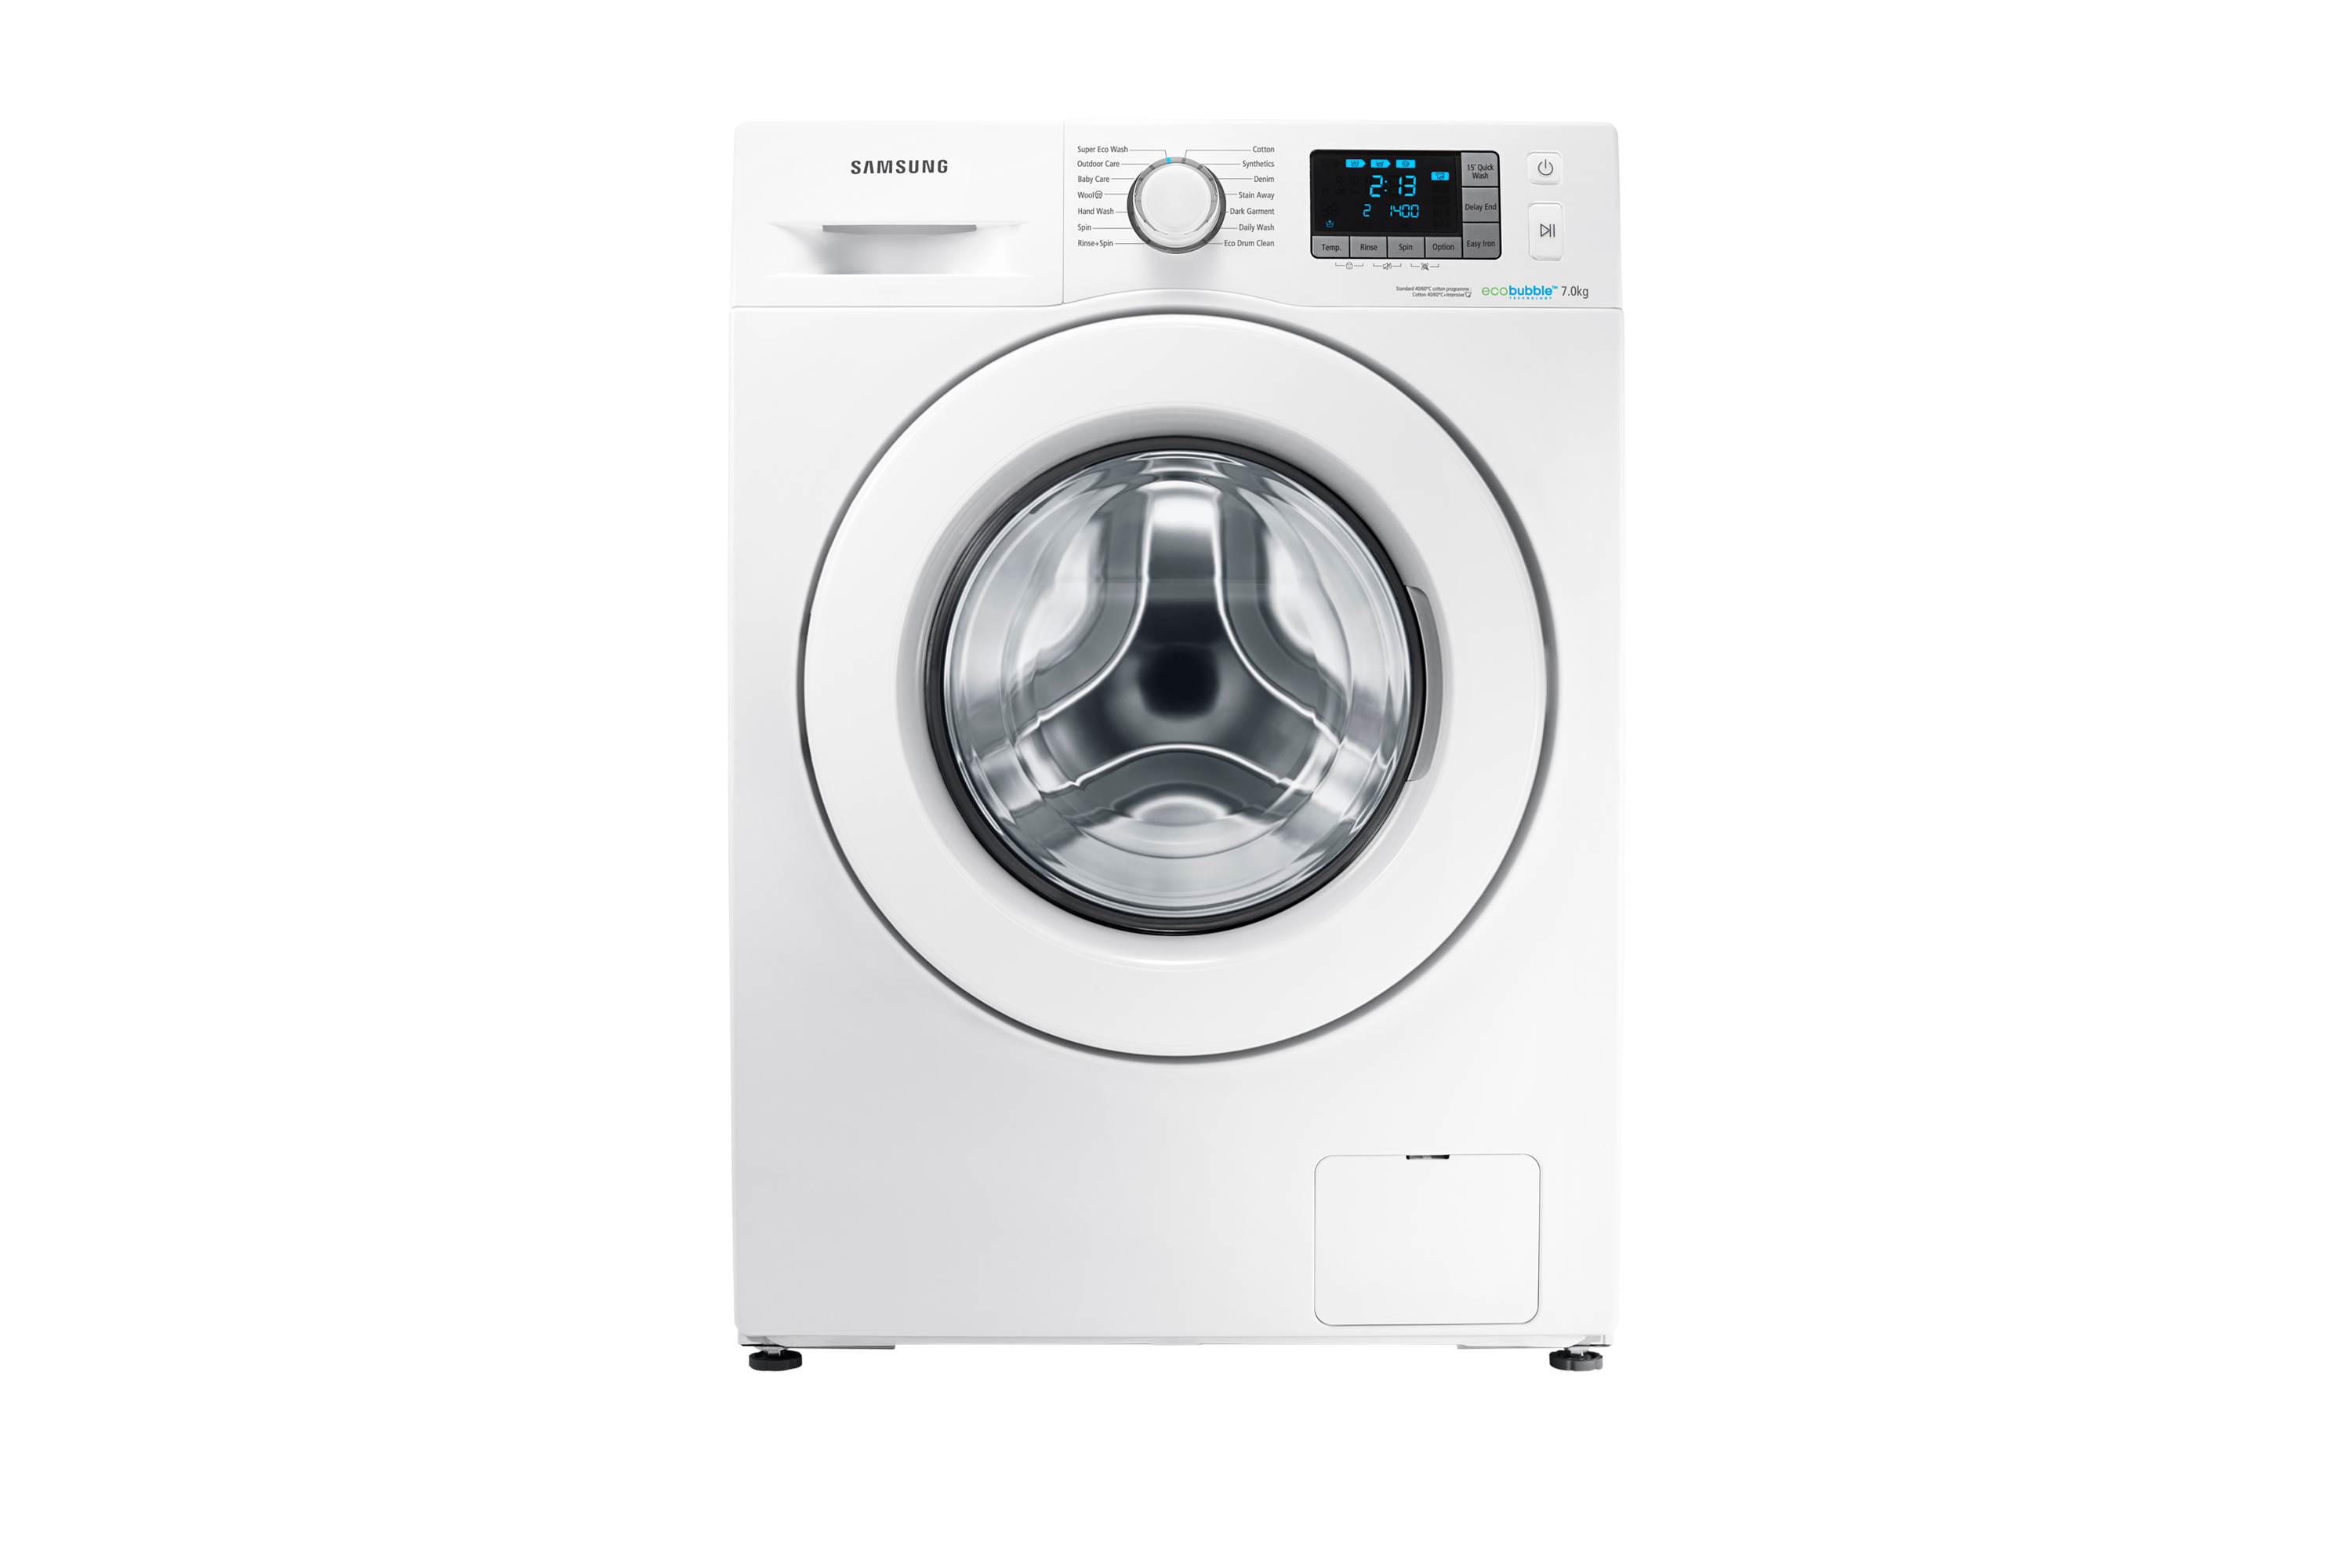 F500 Washing Machine with ecobubble, 7 kg